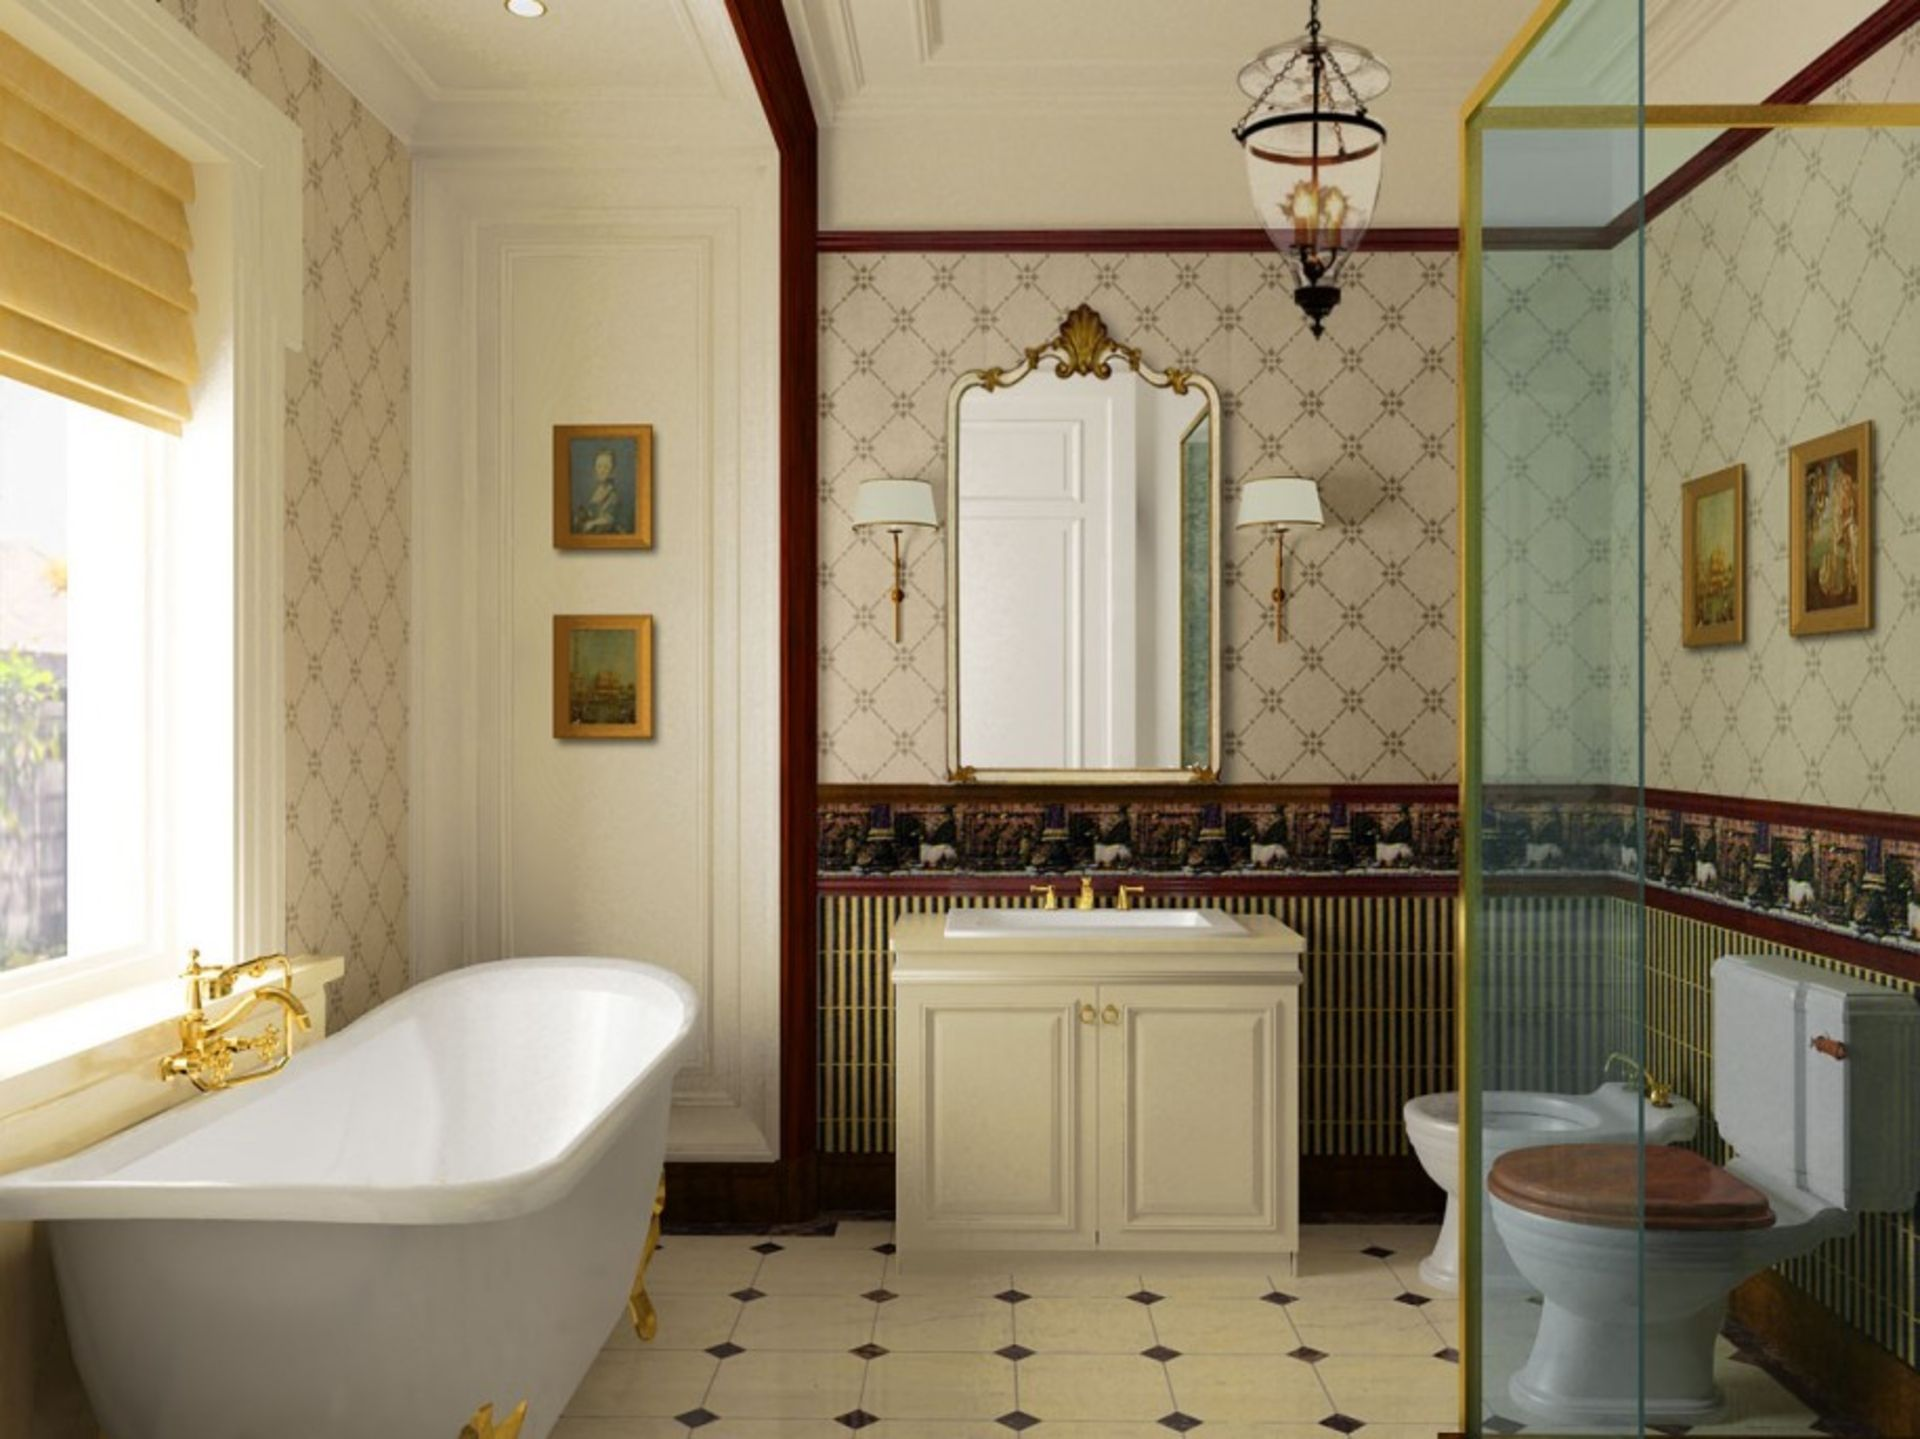 Home Bathroom Designs Unique 54 Best Bathroom Reno Images On Pinterest  Bathroom Bathrooms Inspiration Design